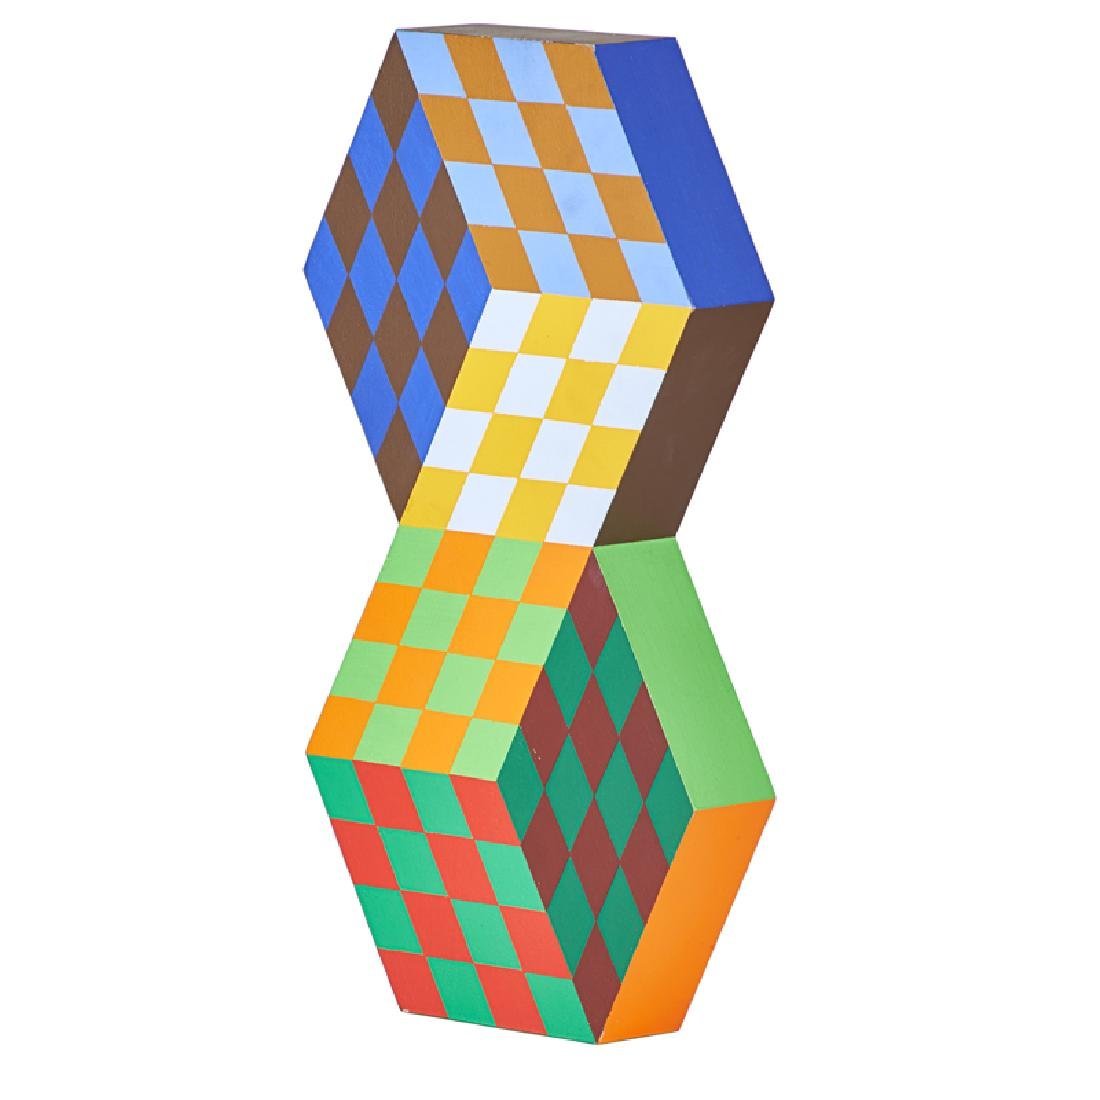 Victor Vasarely (French/Hungarian, 1908-1997) - 3